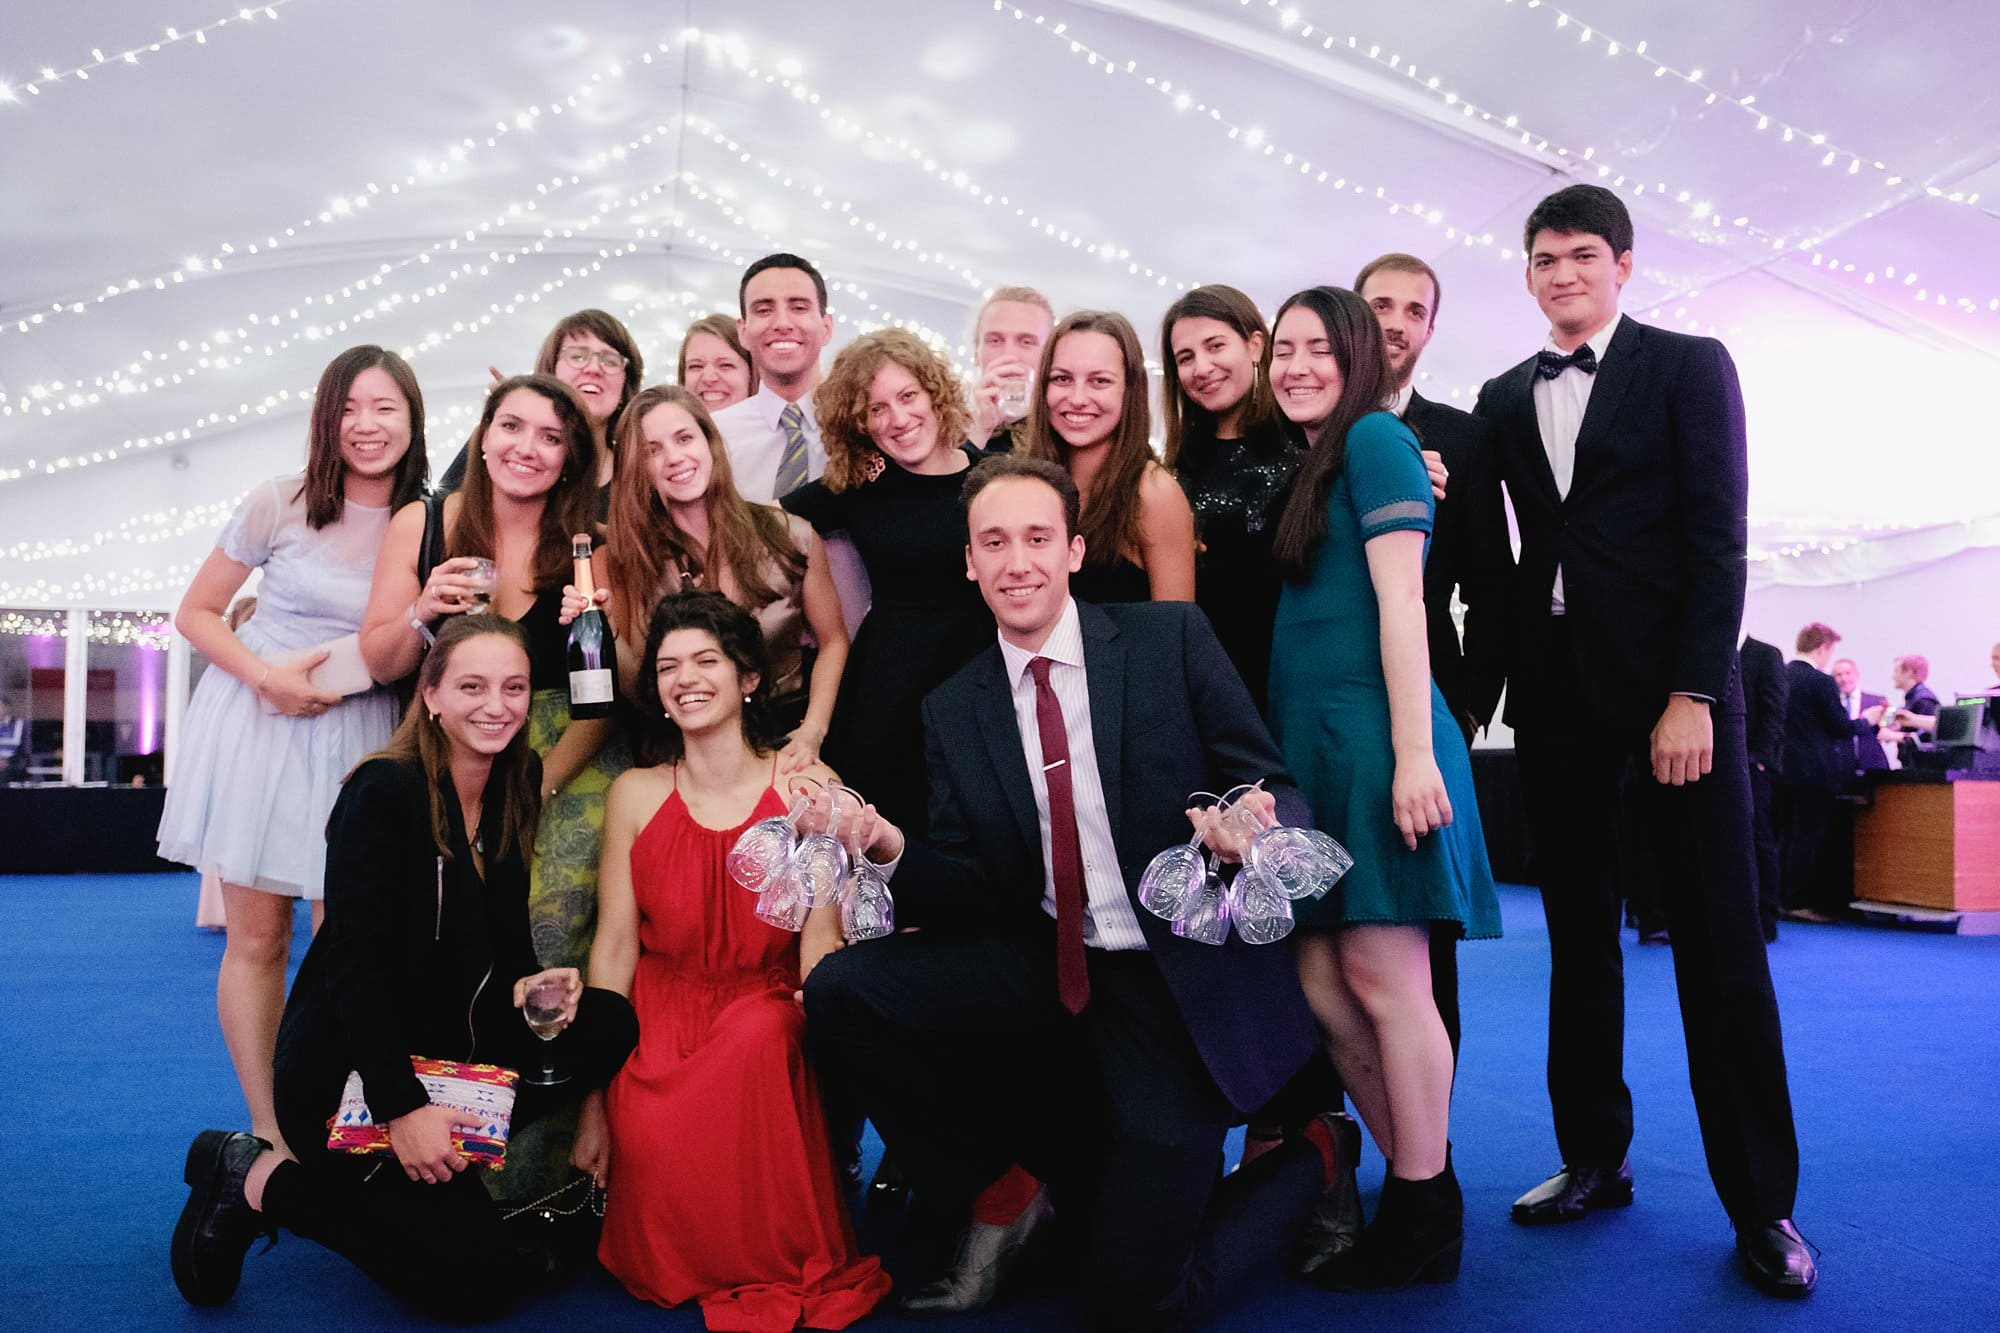 event photographer london icl 2017 023 - Imperial College London Sports Awards 2017